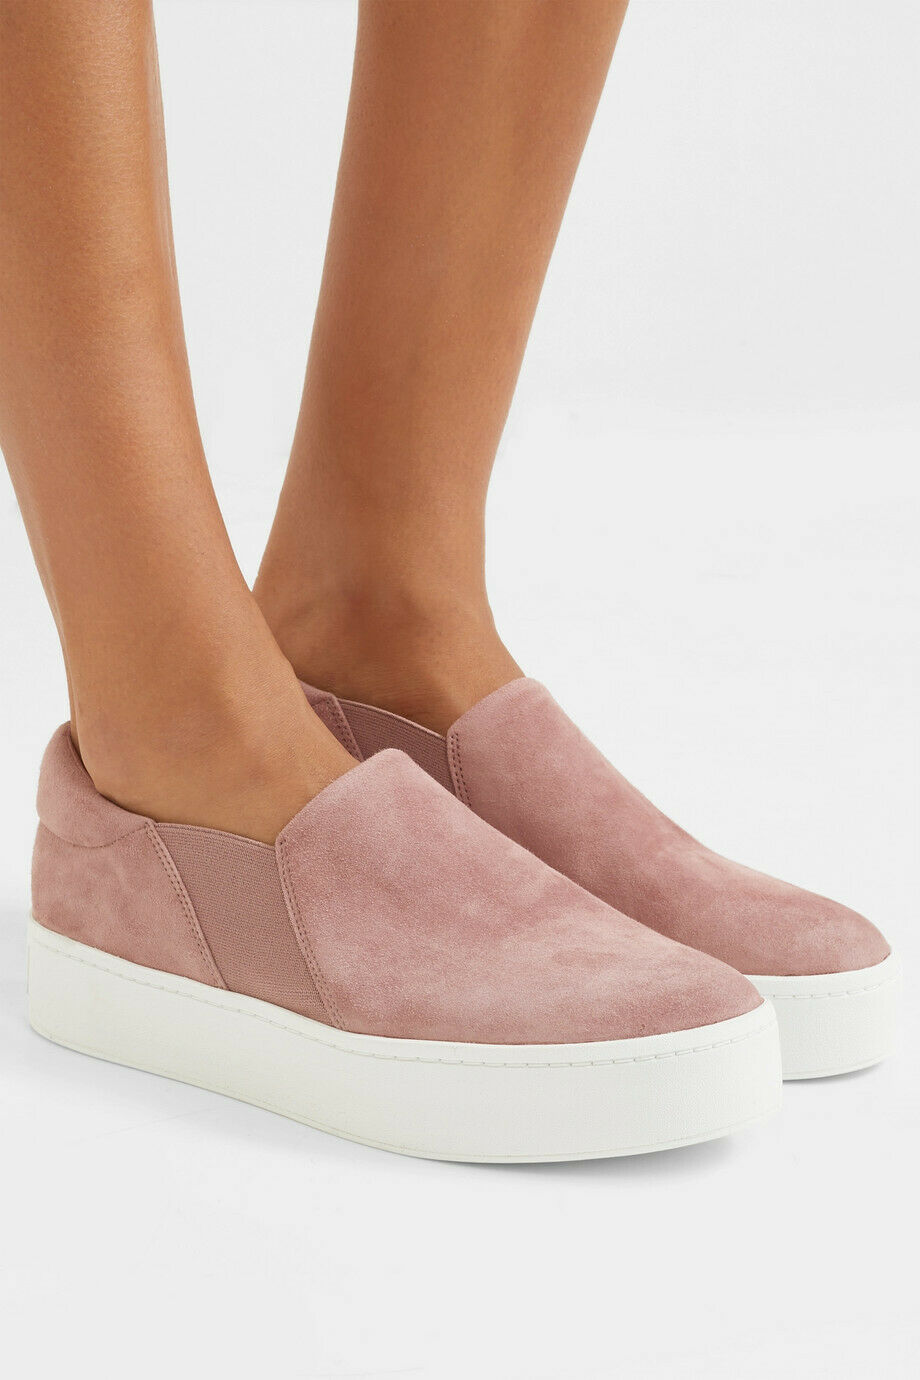 NIB Vince Warren Suede Slip On scarpe scarpe scarpe da ginnastica, Hydrangea As seen on Jessica Alba  225 92b471